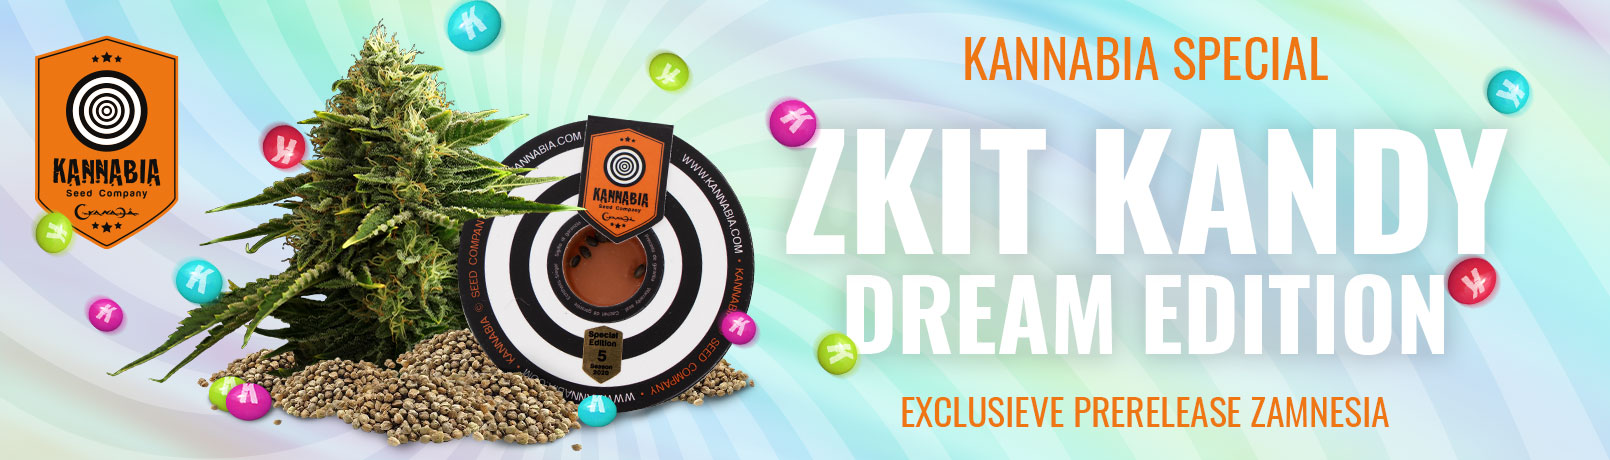 Zkit Candy 1 NL_offer